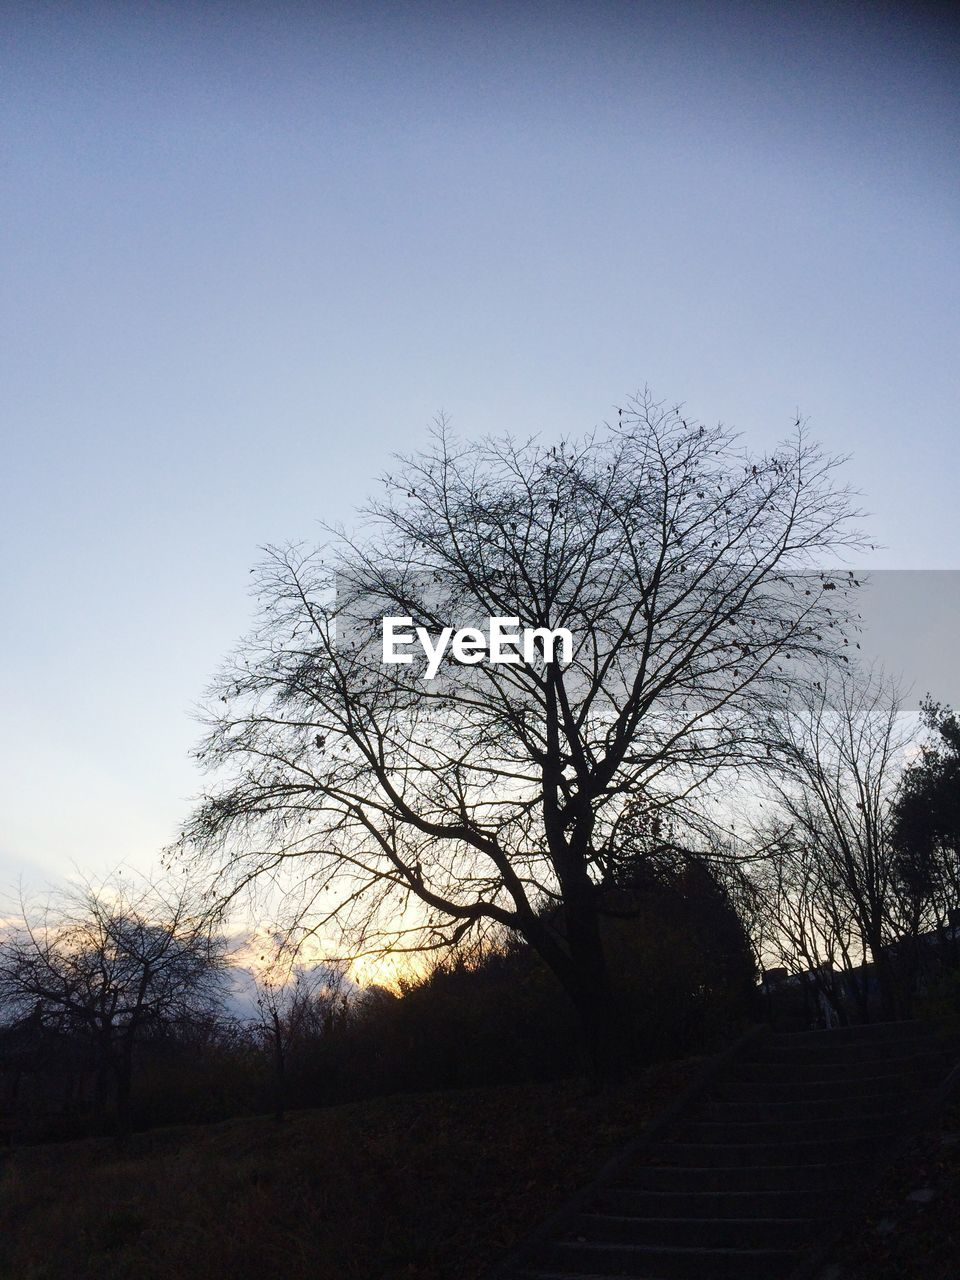 SILHOUETTE OF BARE TREES AGAINST CLEAR SKY